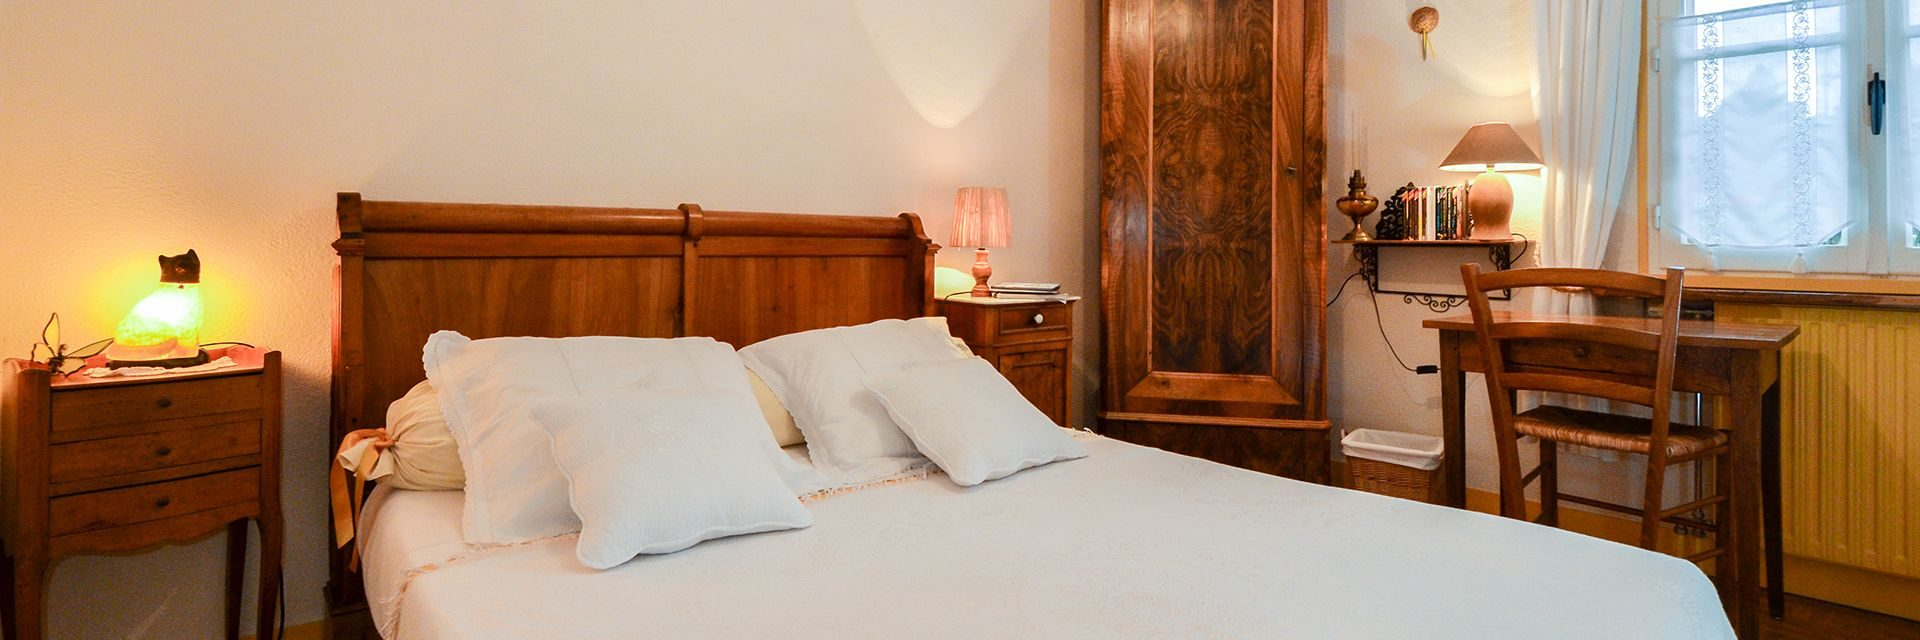 Bed Breakfast Guest House Chartres Les Convivhotes